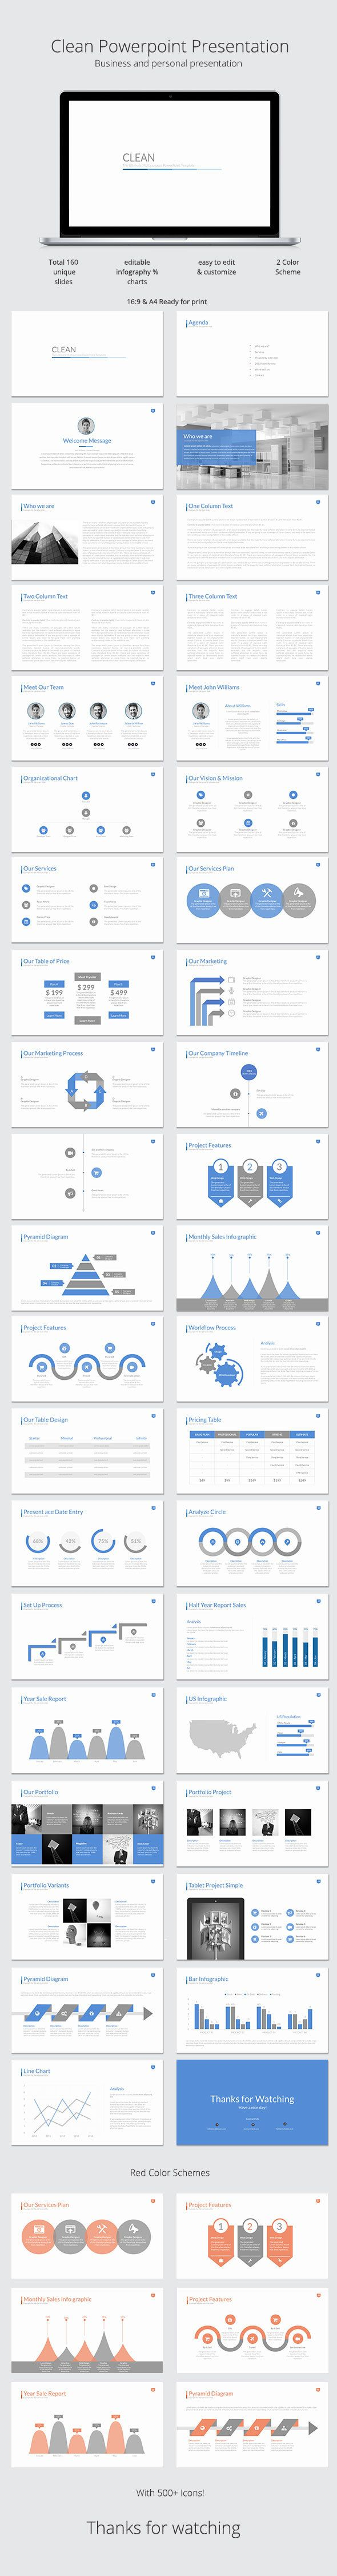 Coolmathgamesus  Wonderful  Ideas About Powerpoint Presentations On Pinterest With Magnificent Clean Powerpoint Template With Comely Free Professional Powerpoint Templates Also Free Templates For Powerpoint In Addition Active Shooter Powerpoint And Army Powerpoint Classes As Well As Facebook Powerpoint Template Additionally Convert Powerpoint To Google Slides From Pinterestcom With Coolmathgamesus  Magnificent  Ideas About Powerpoint Presentations On Pinterest With Comely Clean Powerpoint Template And Wonderful Free Professional Powerpoint Templates Also Free Templates For Powerpoint In Addition Active Shooter Powerpoint From Pinterestcom